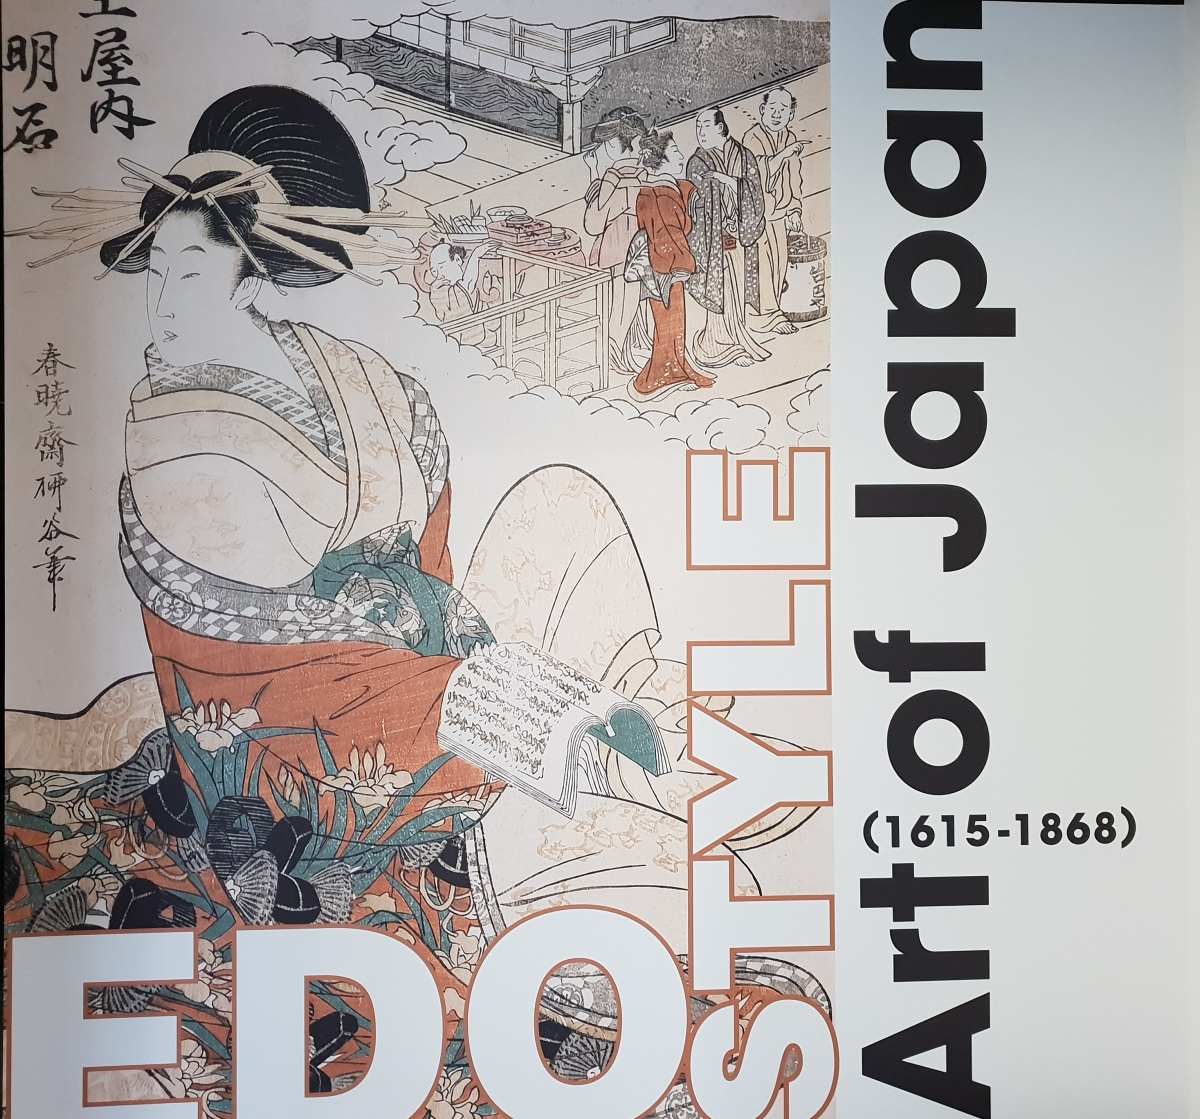 Edo Style: The Art of Japan (OzAsia Festival 2018)